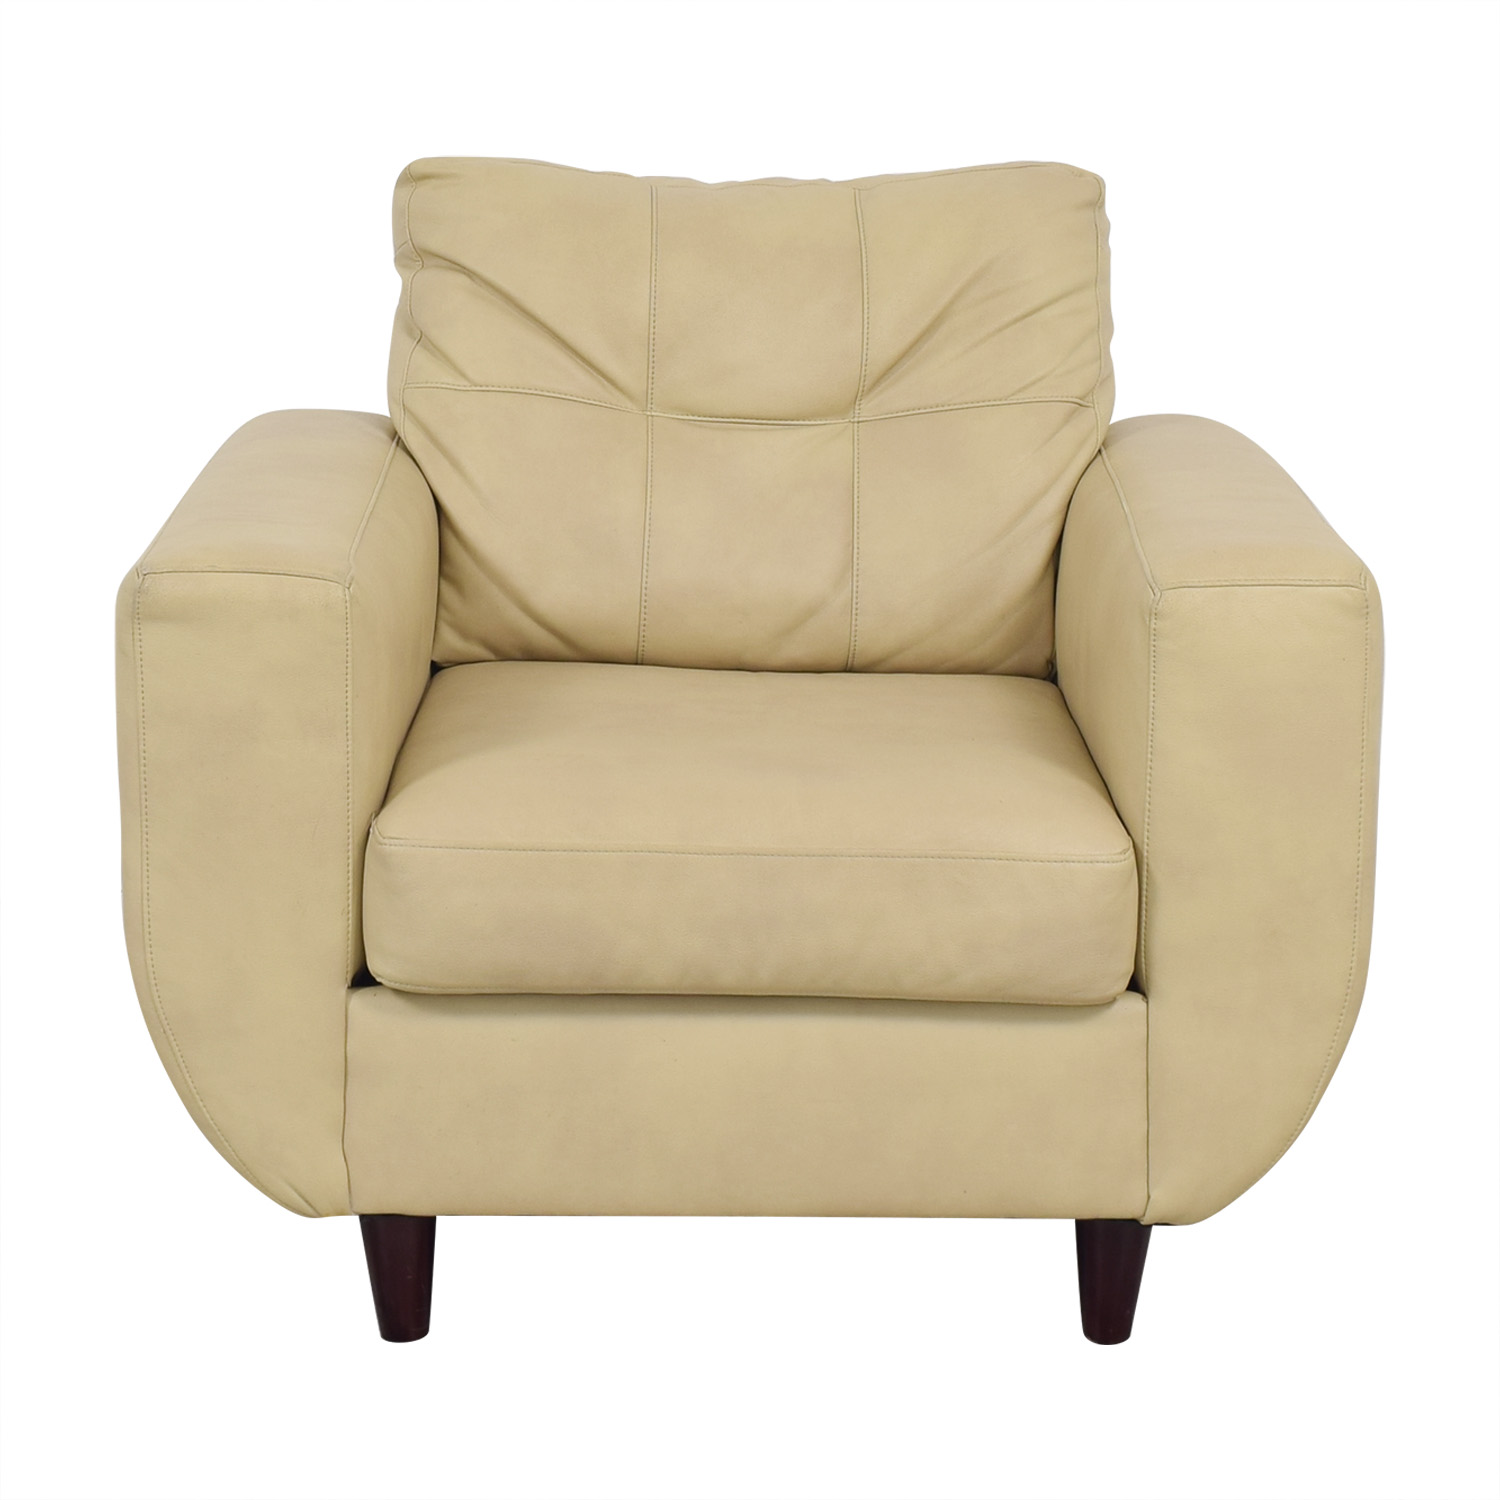 shop HomeGoods Cushioned Armchair HomeGoods Chairs